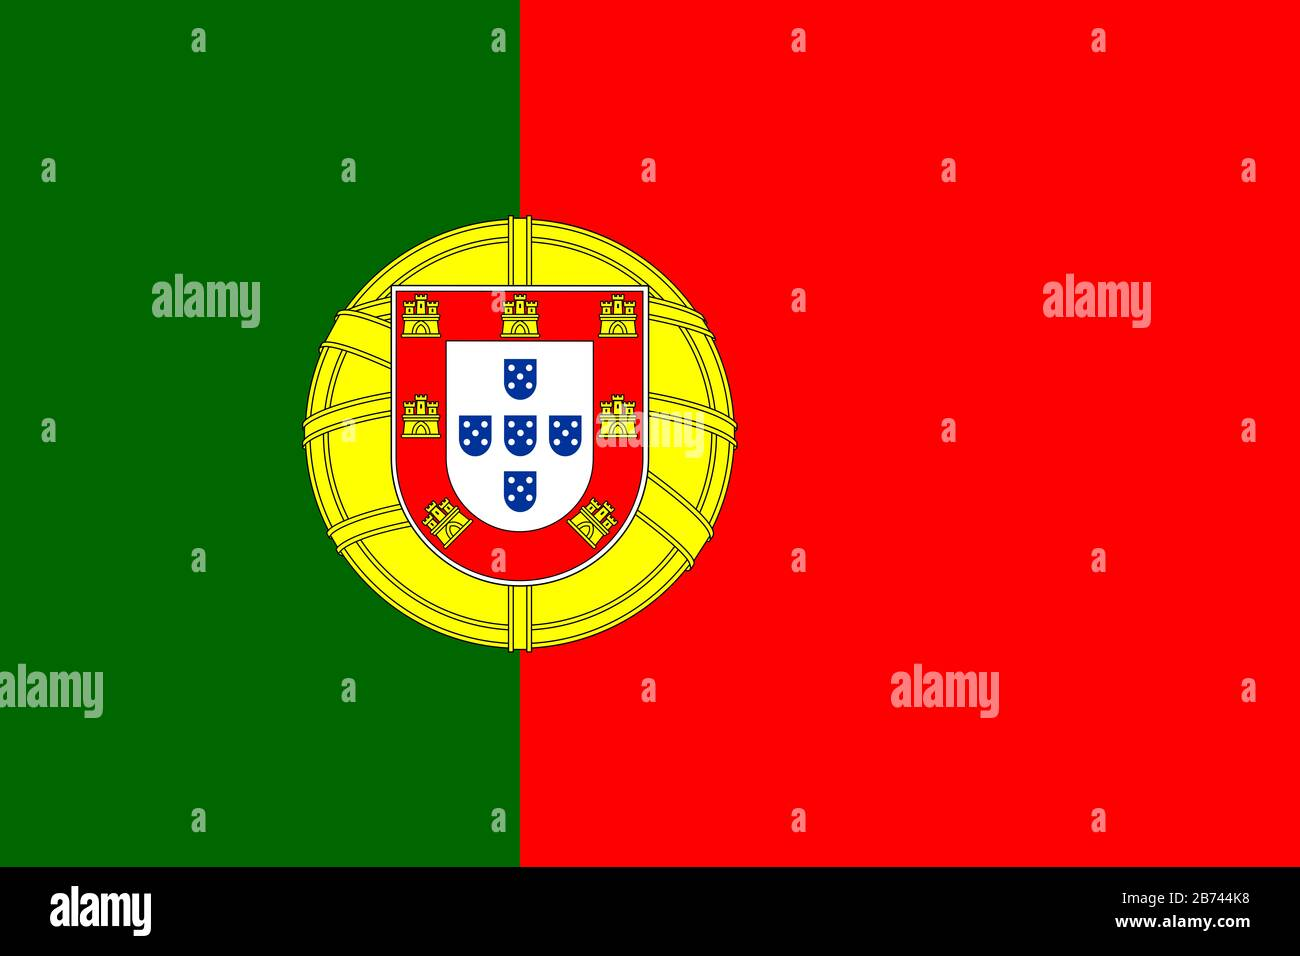 Flag of Portugal - Portuguese flag standard ratio - true RGB color mode  Stock Photo - Alamy